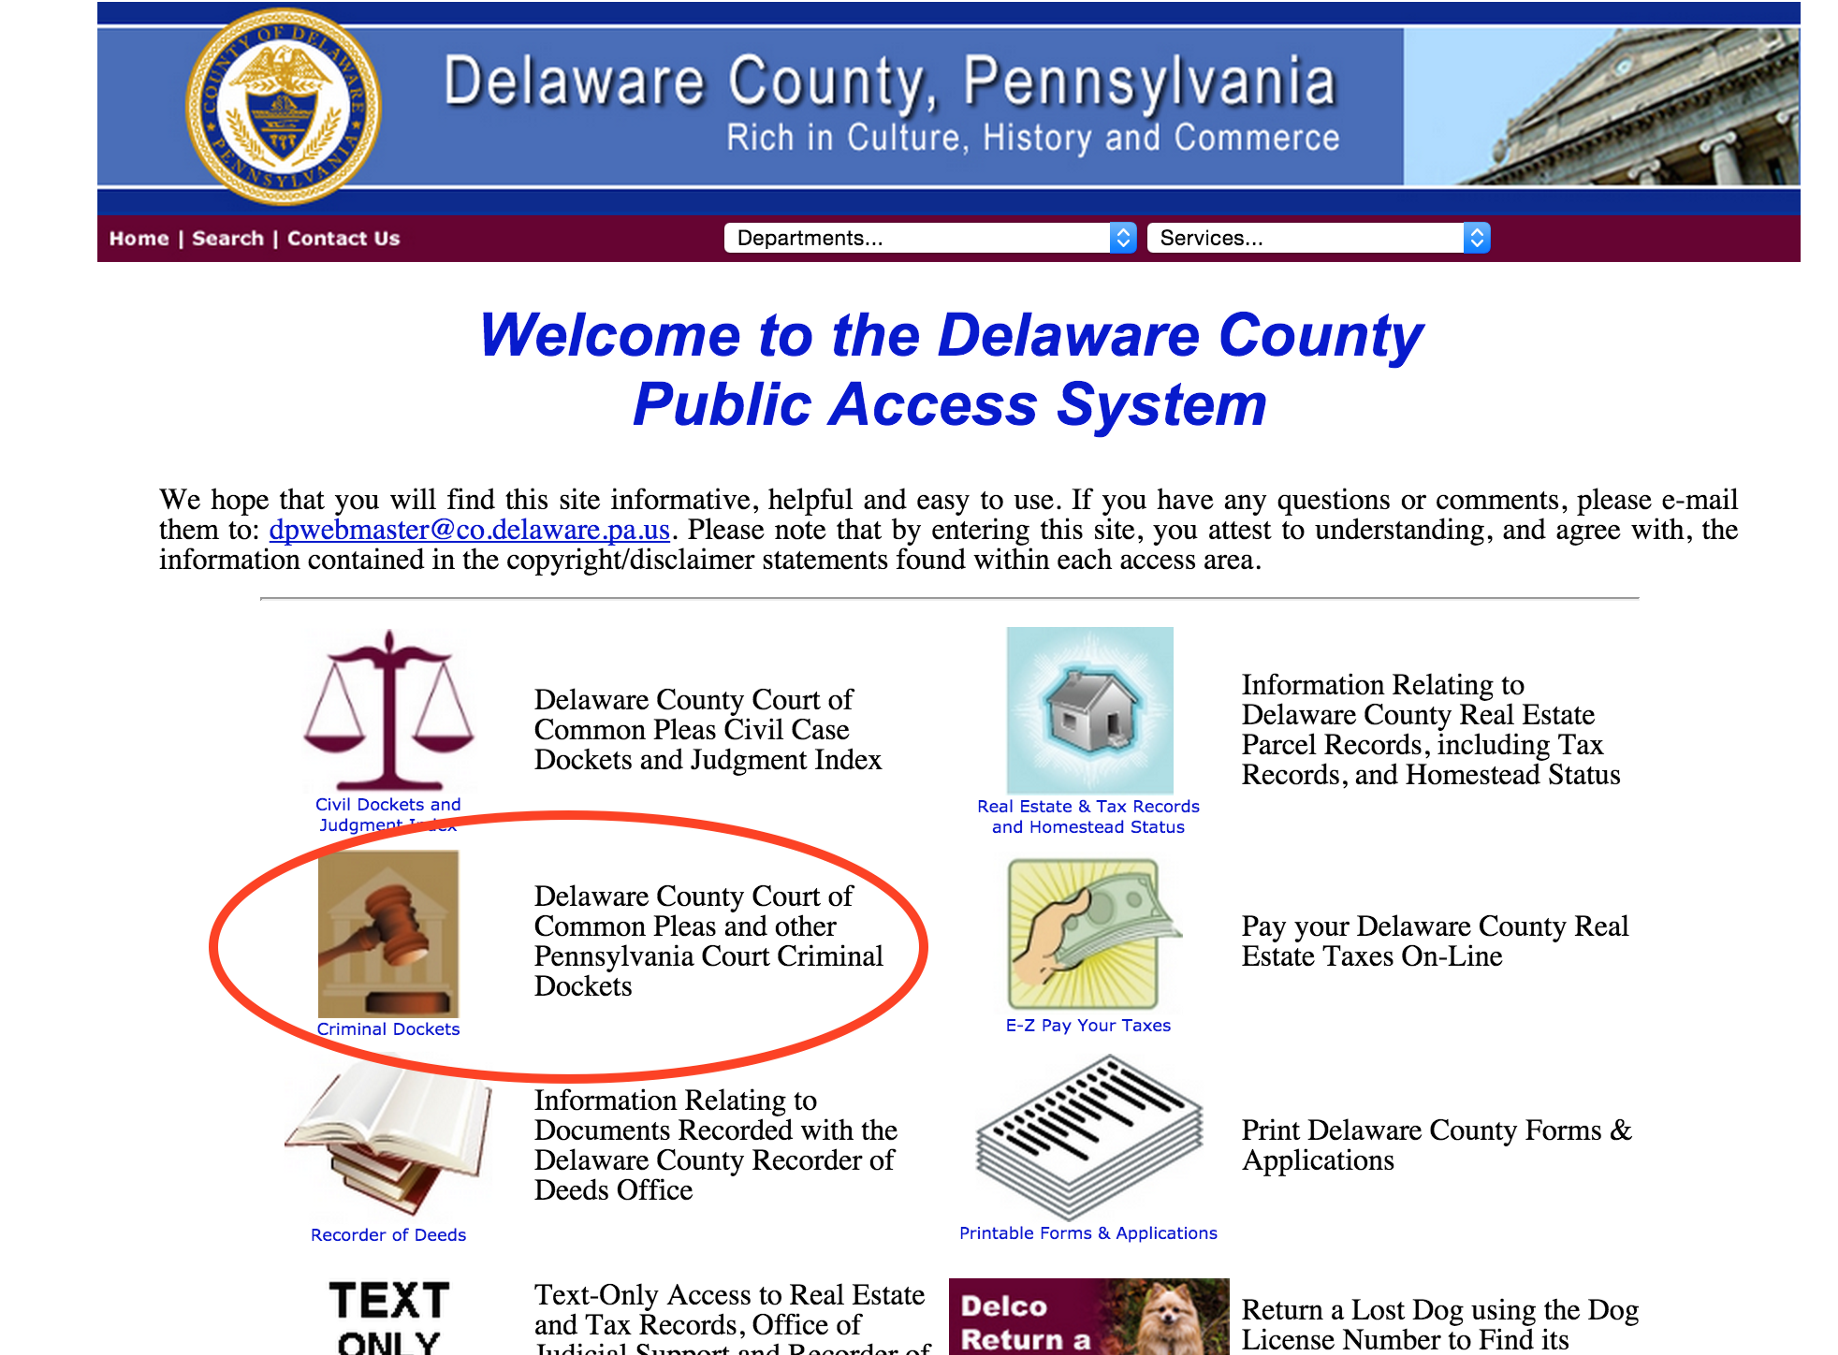 How to pre-screen tenants using the Delaware County Public Access System